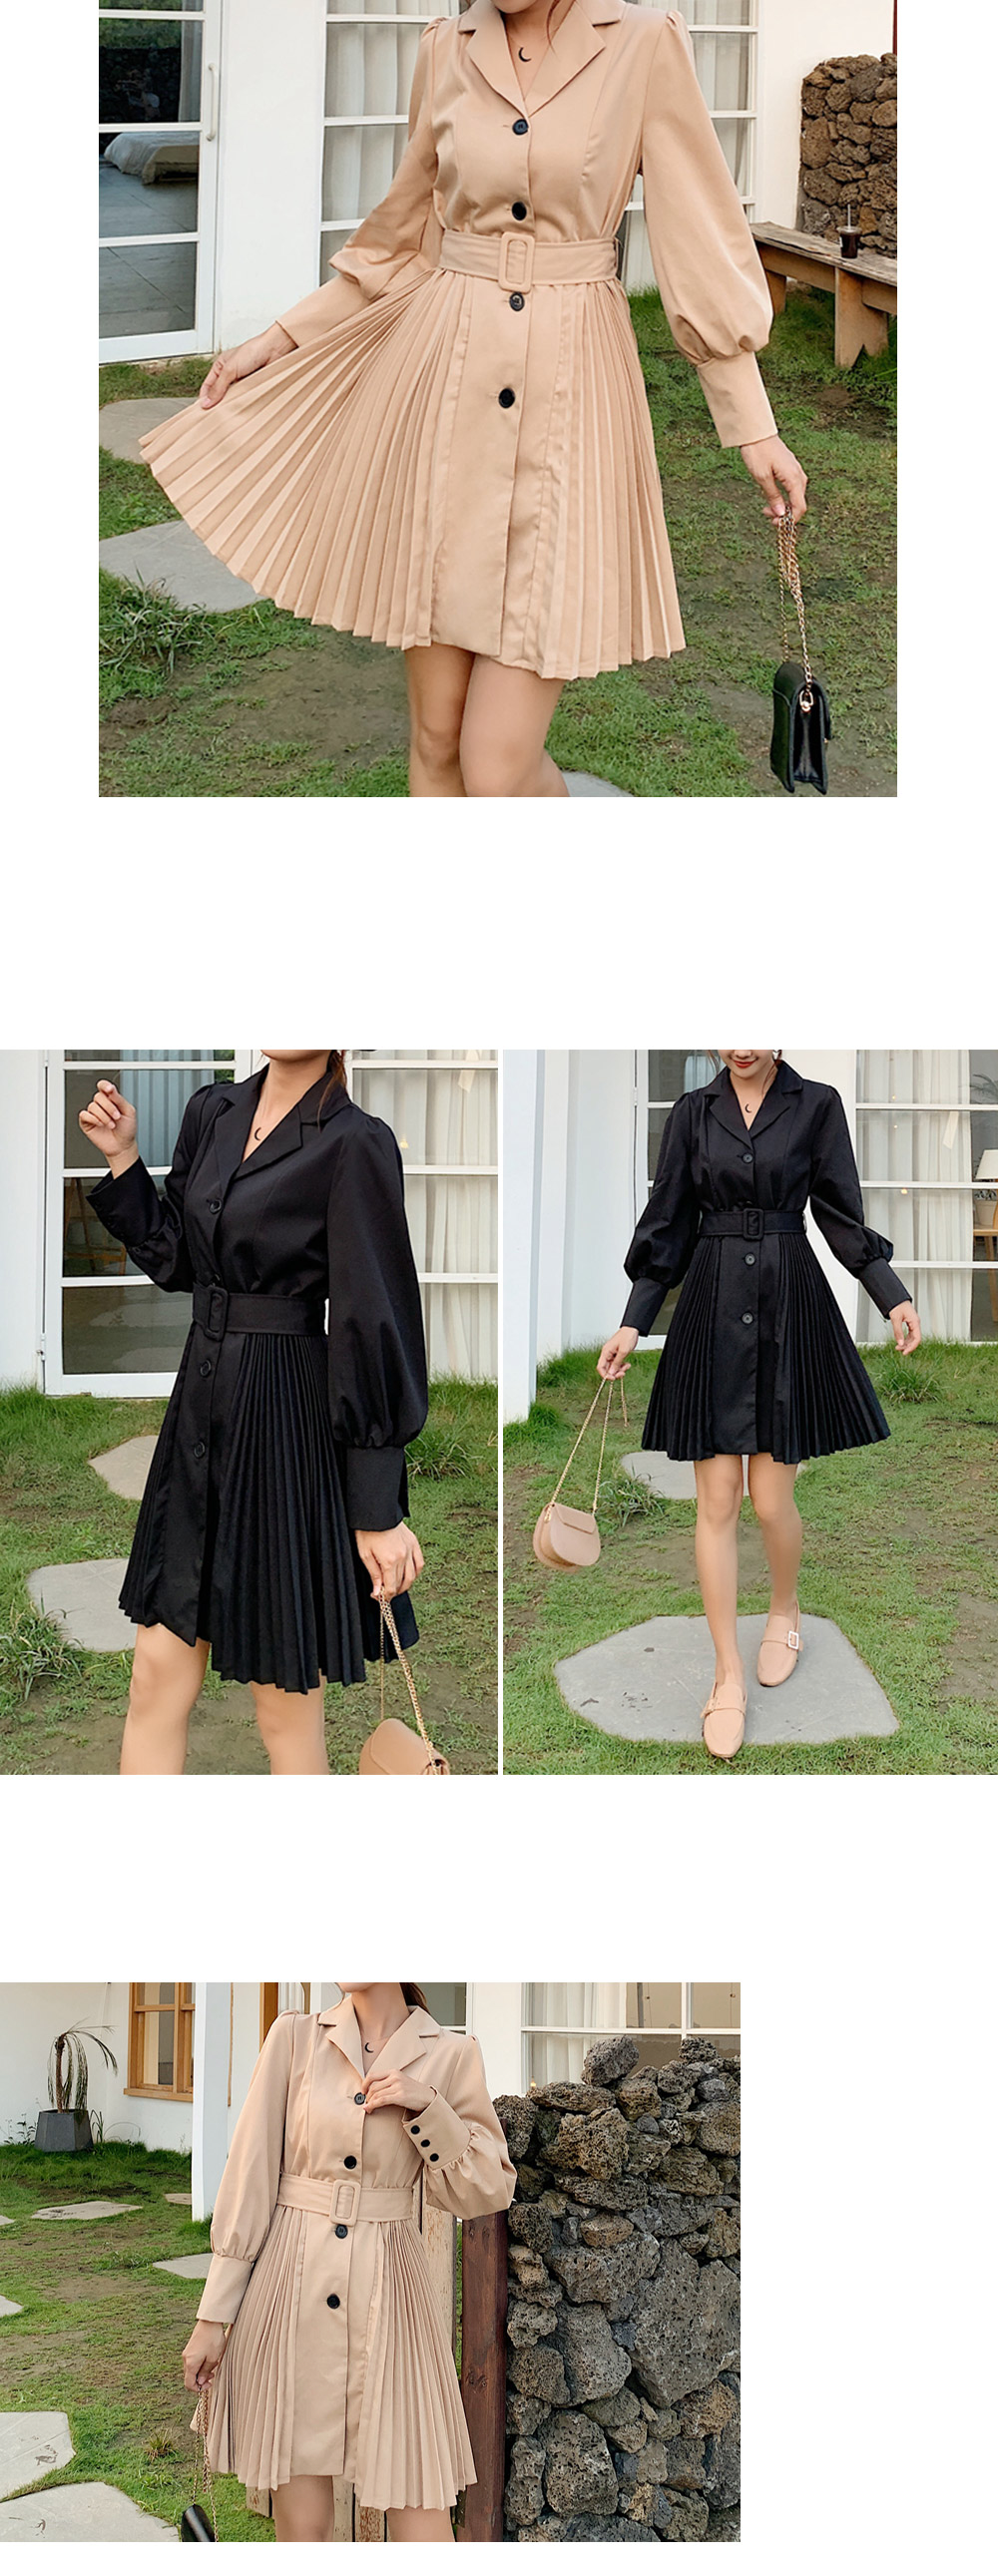 Luples Trench Dress